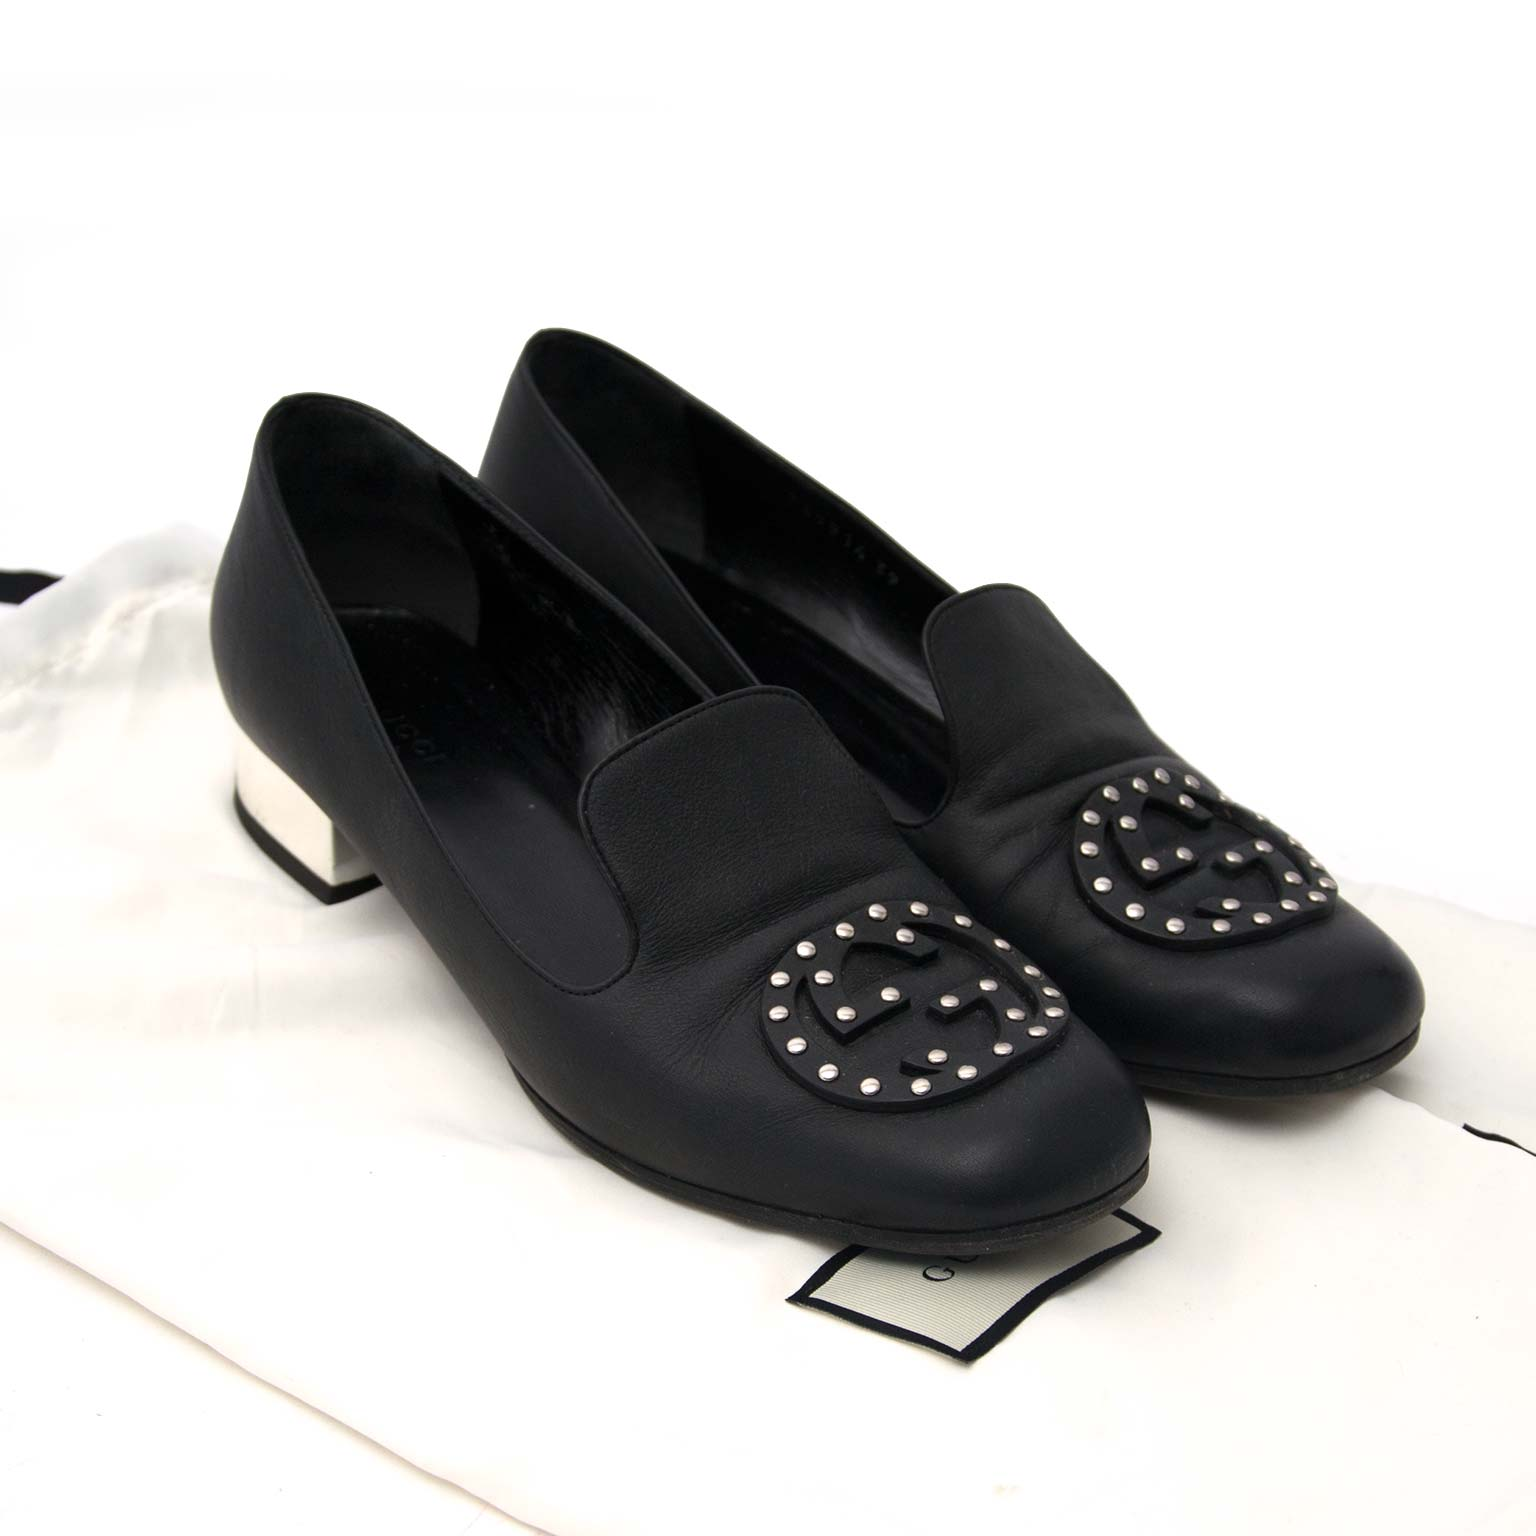 shop safe online Gucci Black Loafers Silver Heels Size 39